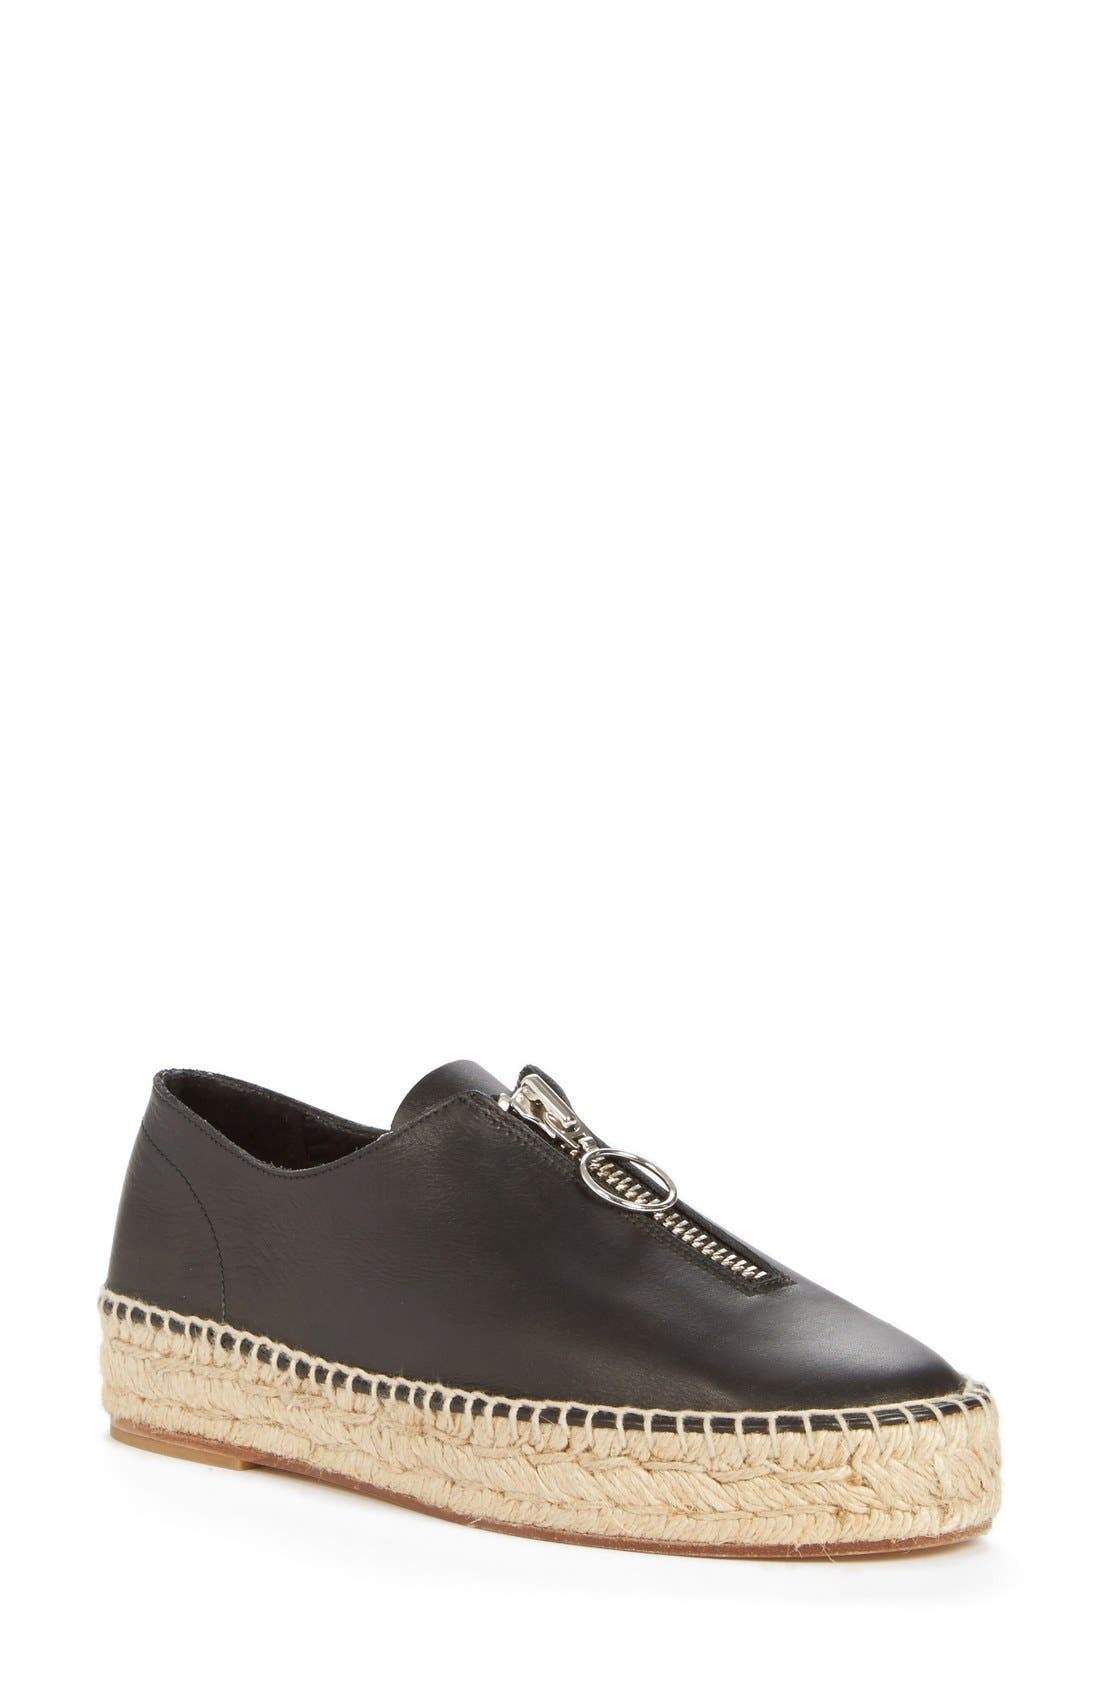 Alternate Image 1 Selected - Alexander Wang 'Devon' Espadrille Flat (Women)